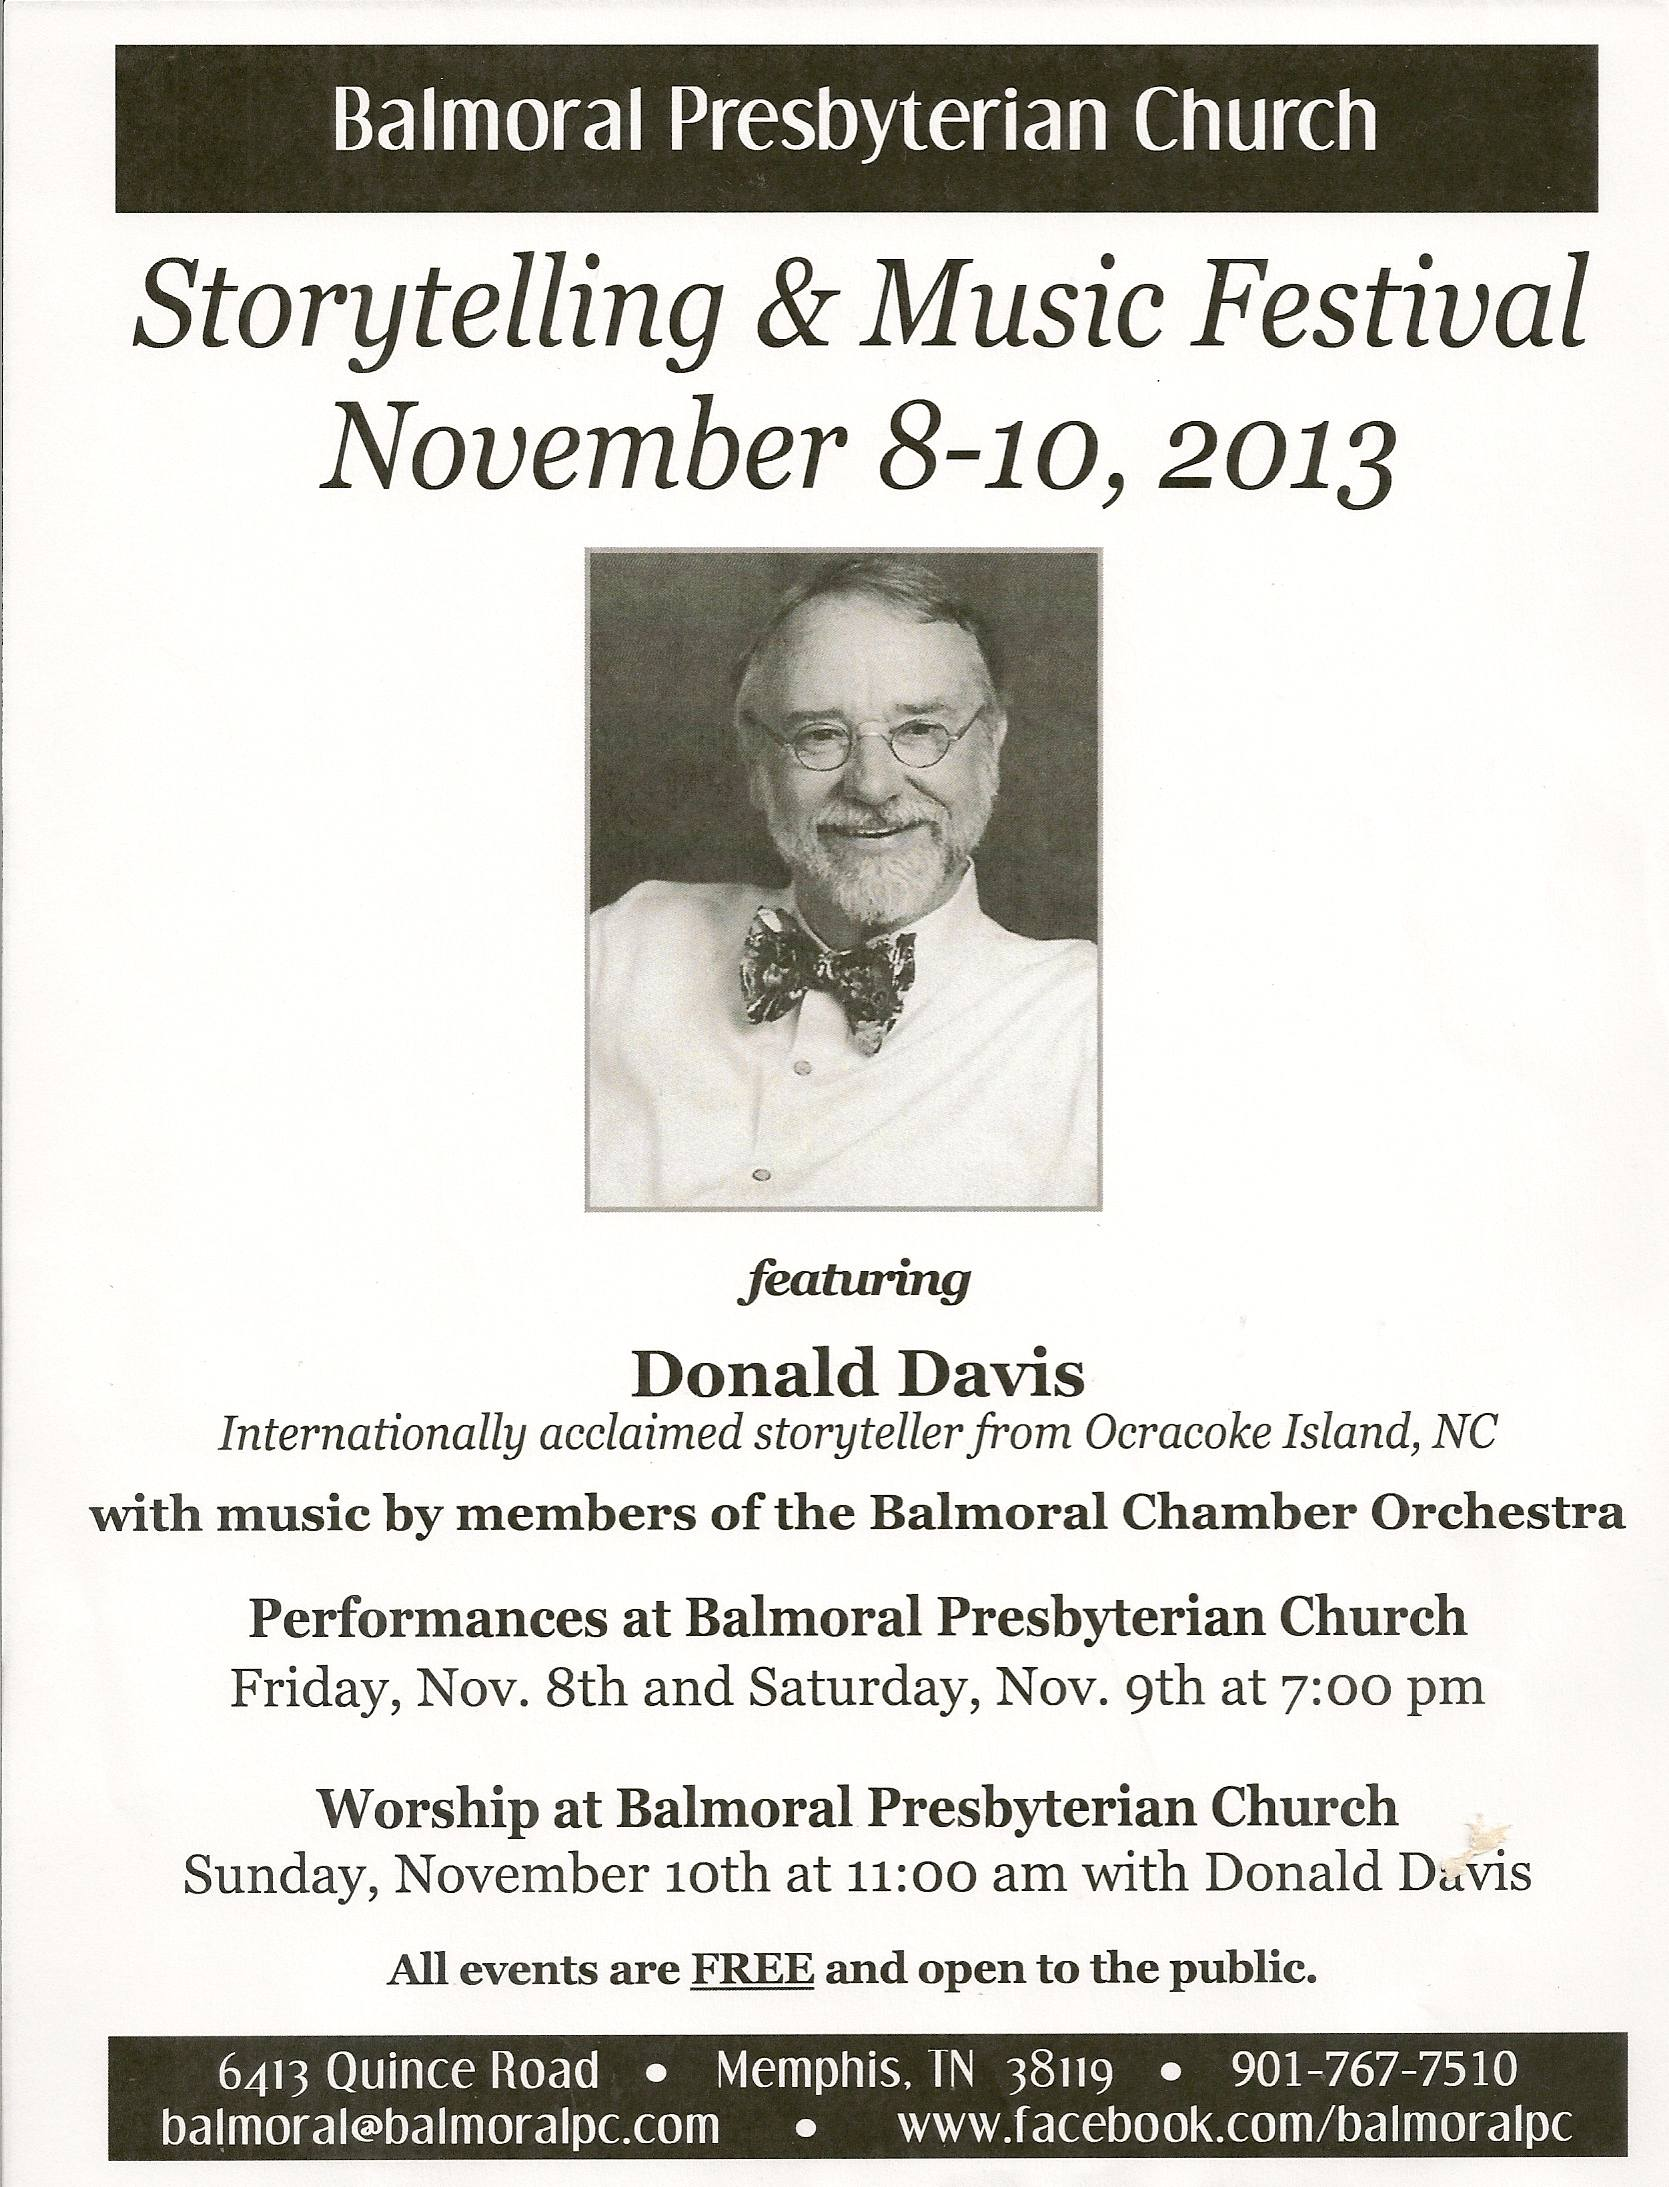 Memphis interreligious group older history page nov 8 730 pm at temple israel first baptist church poplar and parkway has two great interfaith events lined up with temple israel this weekend fandeluxe Choice Image